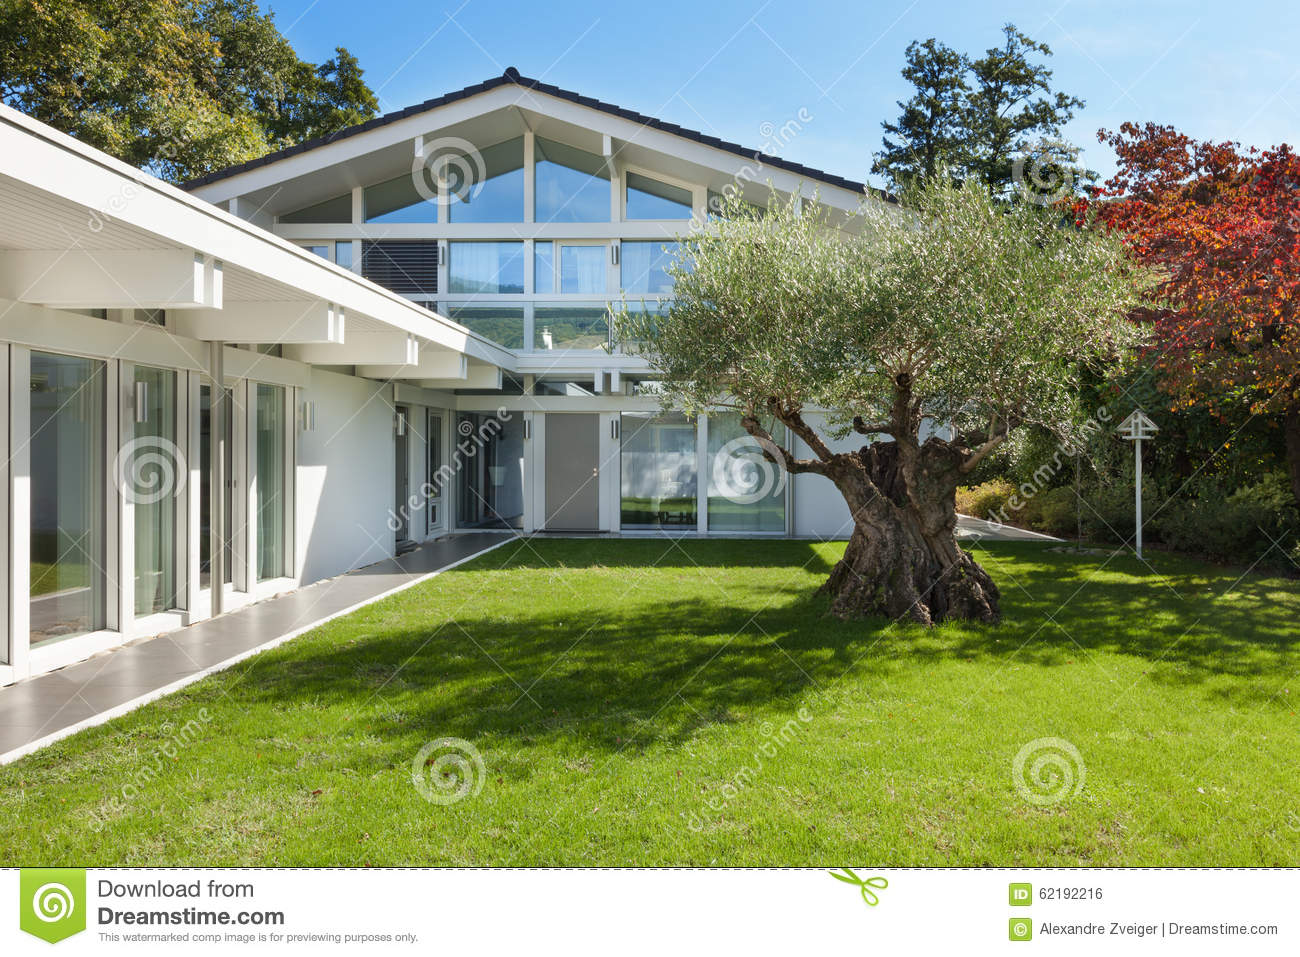 Jardin d 39 une maison moderne avec l 39 olivier photo stock for Architecture d une maison